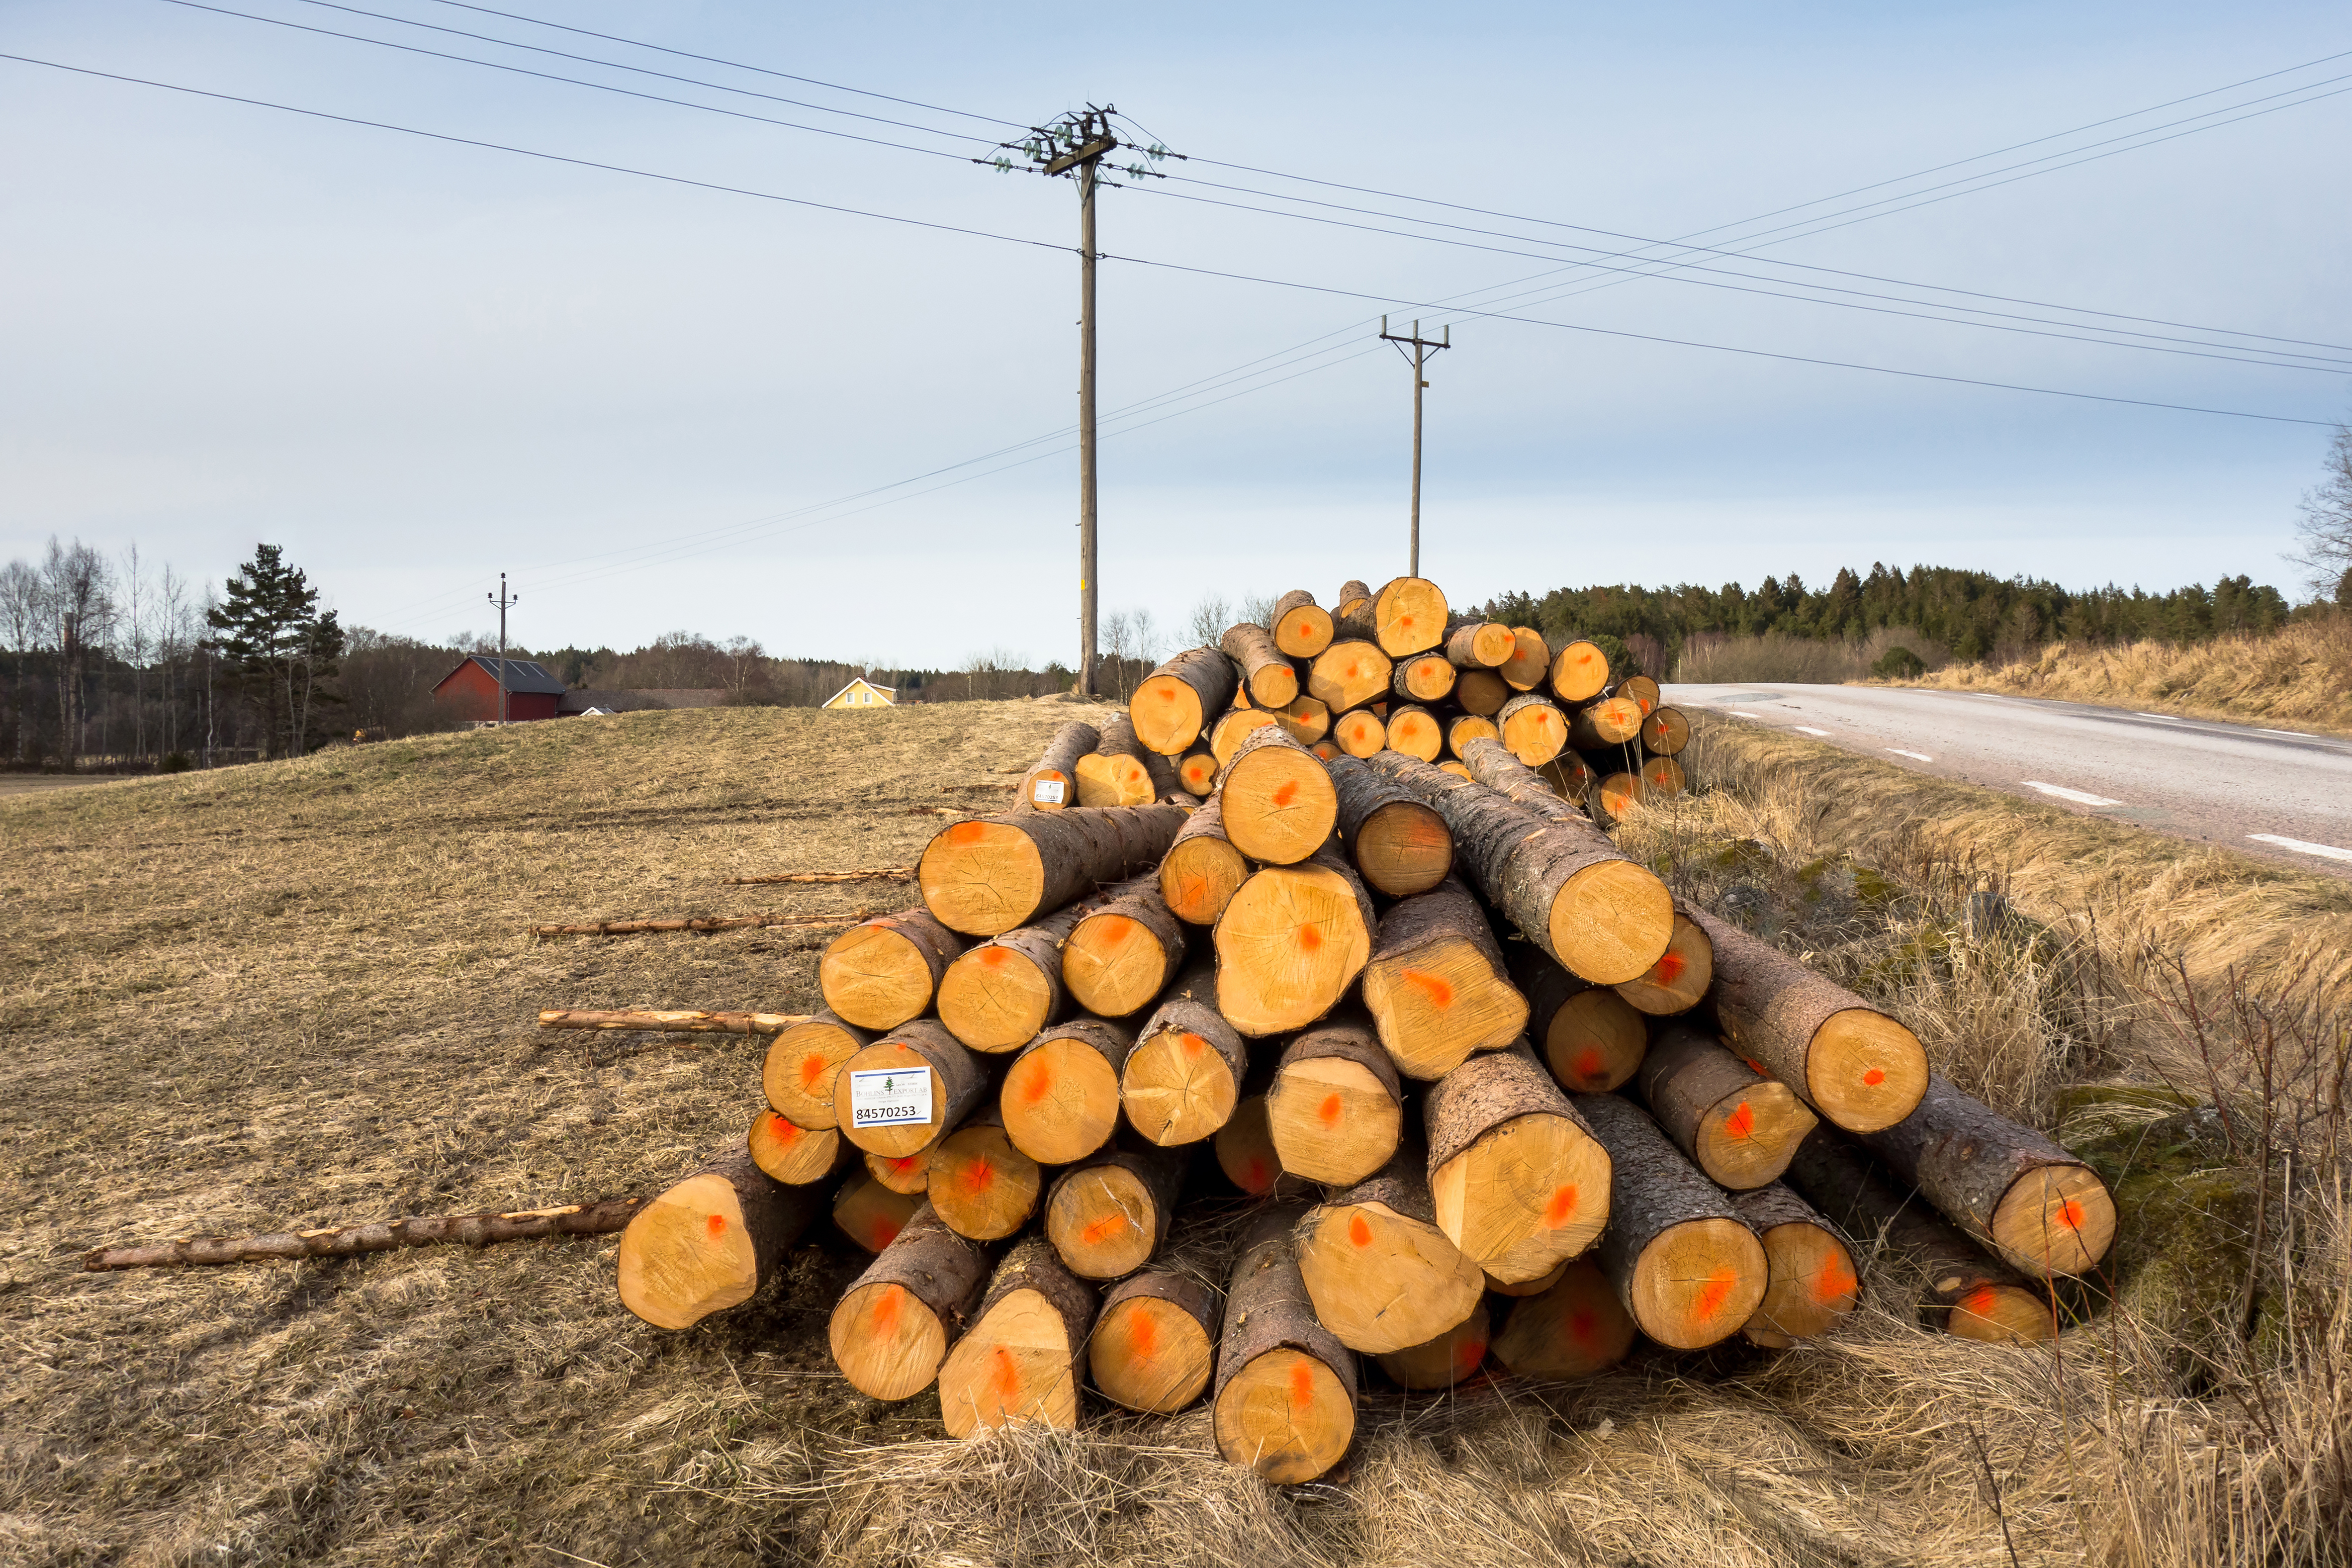 Piles of logs beside a road 2, Dry, Electricity, Grass, Logs, HQ Photo